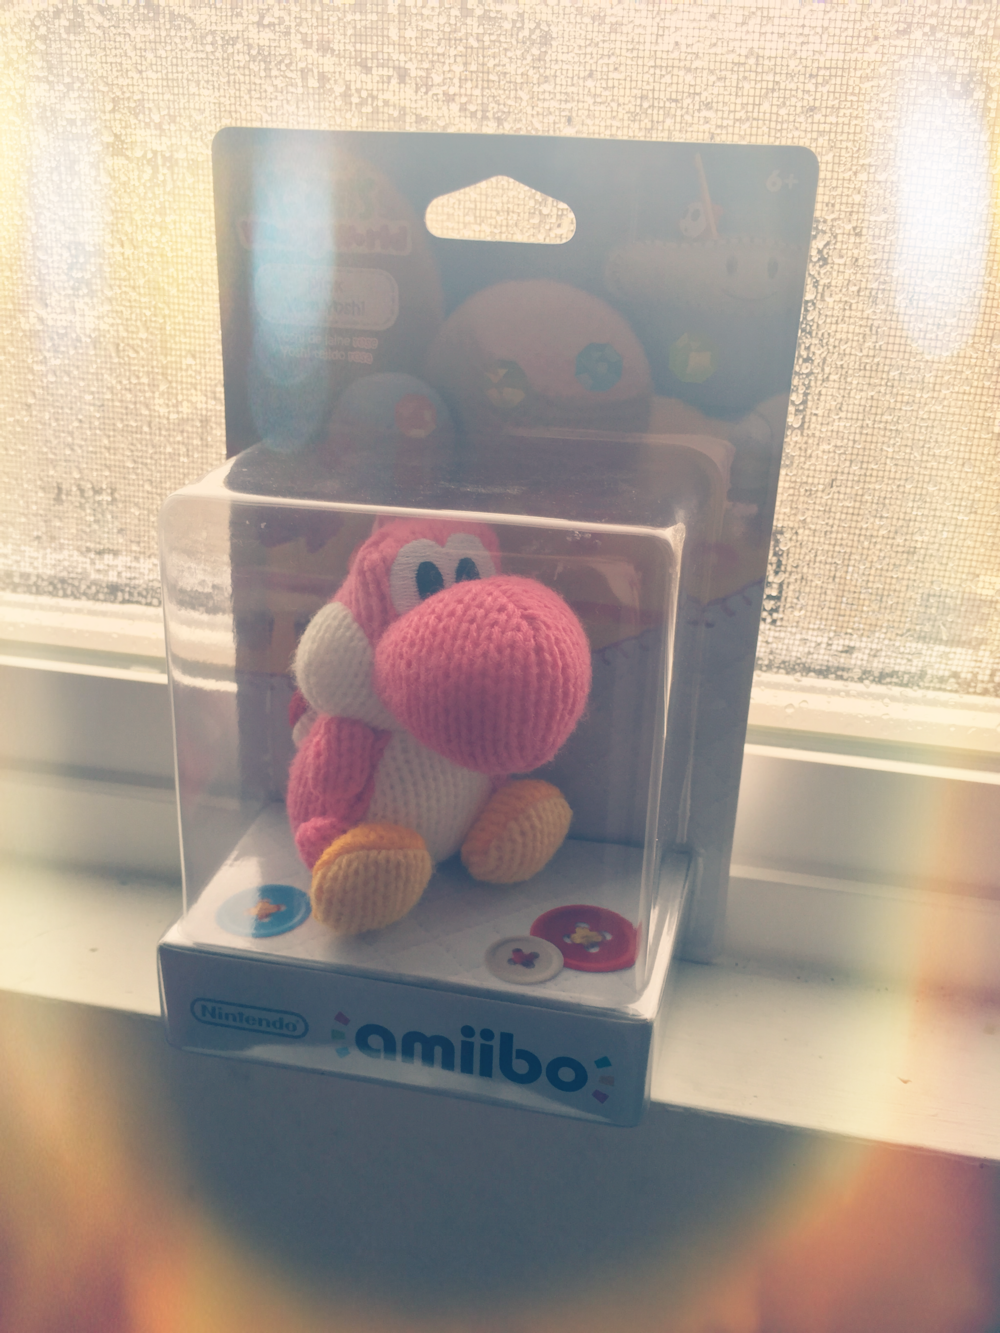 One day, like my PS4, I will have a Wii U again! I've been swooning over the Pink Yarn Yoshi amiibo for some time so I was so excited to see I have the lil guy to display now!